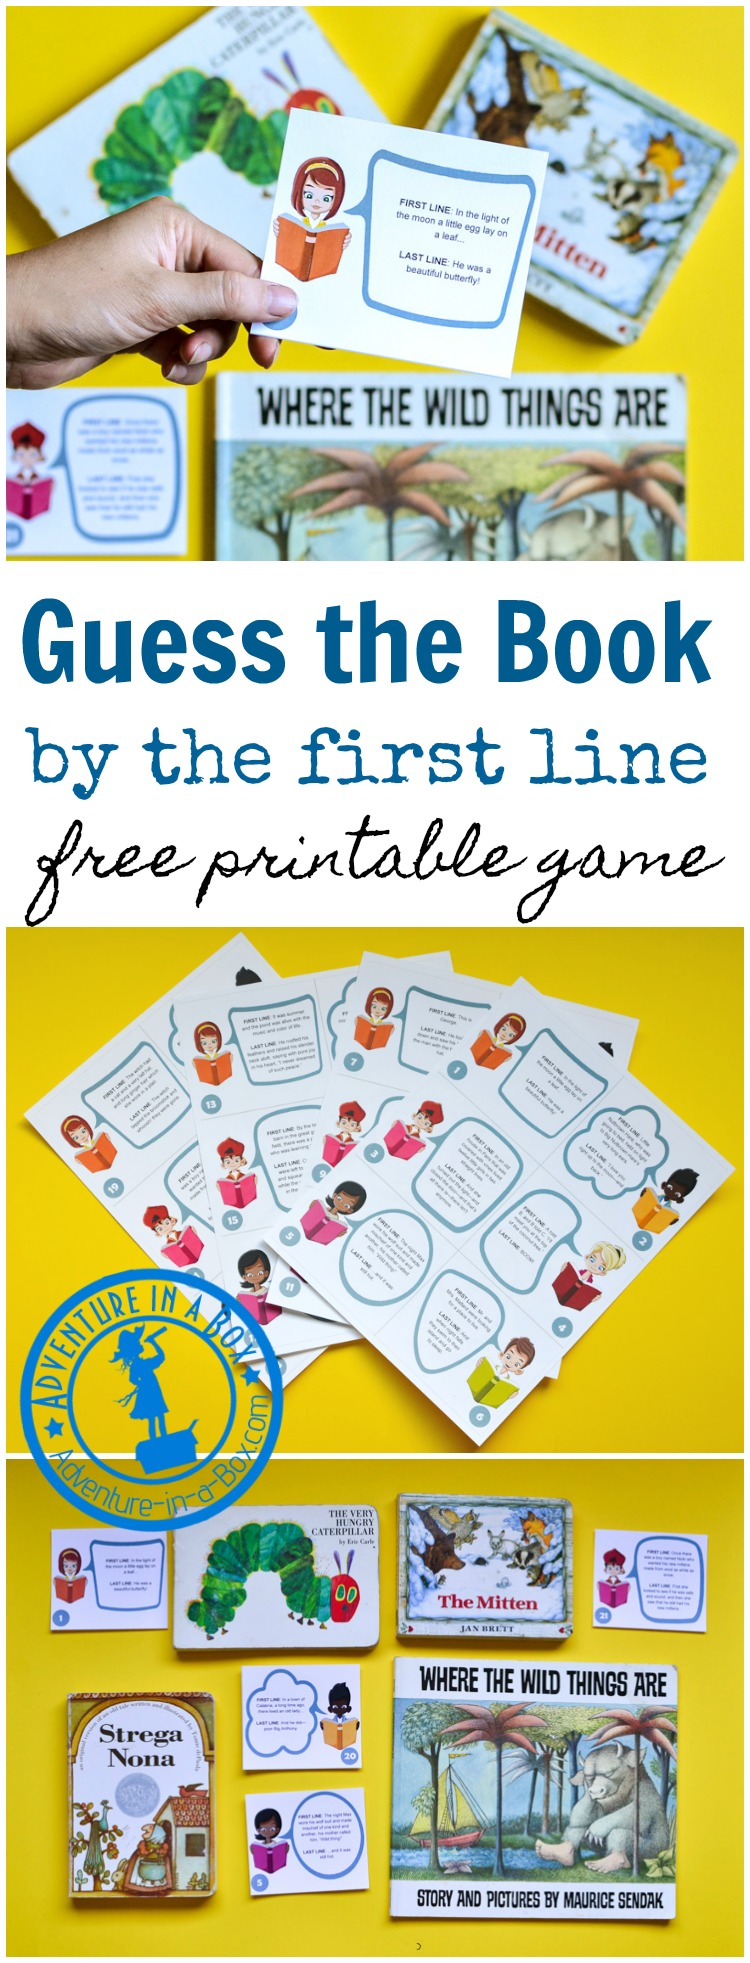 Guess the Picture Book by the First Line is a free printable game about books for kids who like to read, their parents, teachers and librarians. Discuss the concepts of titles and authorship, beginnings and endings, and reminisce over favourite old books. Great boredom buster for book lovers! #books #booklover #preschool #homeschool #printablegame